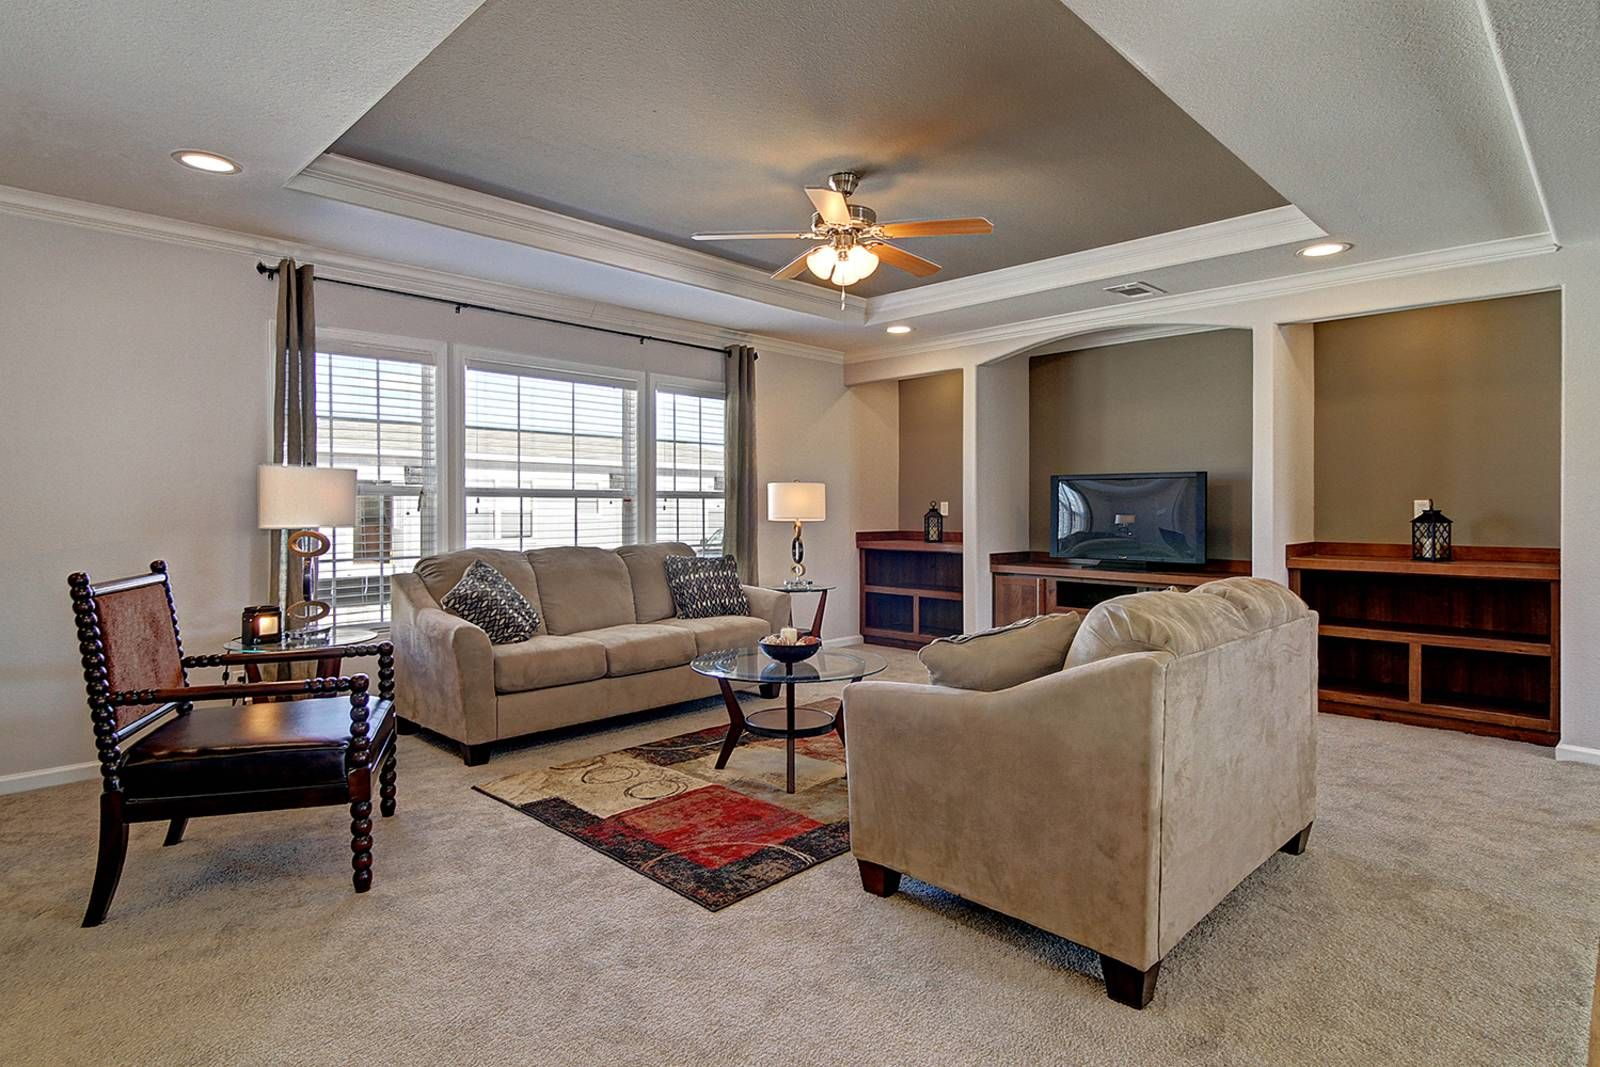 Galleries Champion Homes Texas Manufactured home